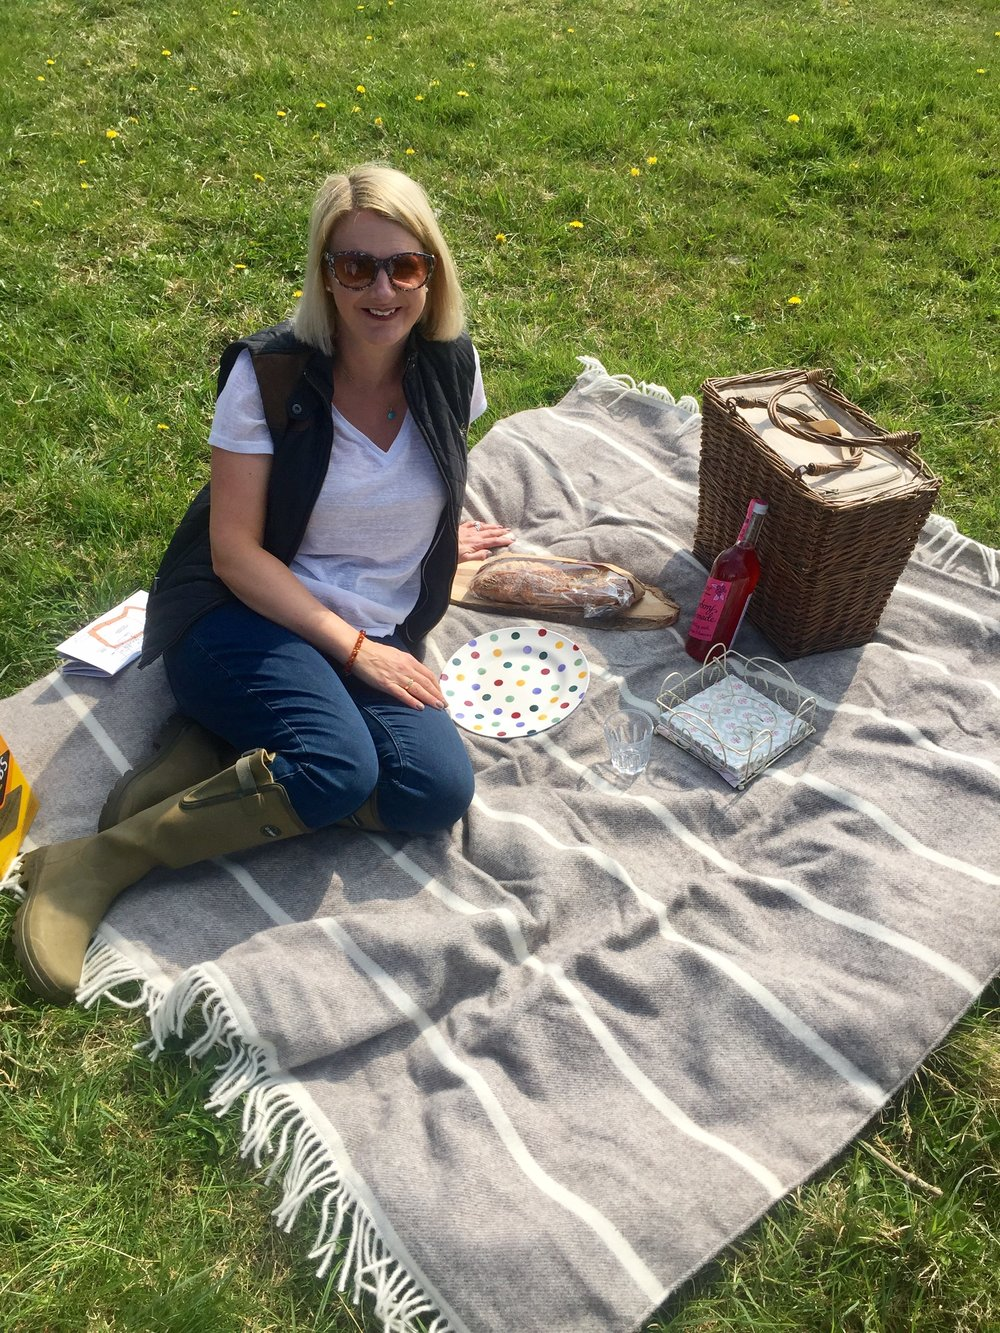 Top From Primark, Gilet from Crew clothing, Jeans from Topshop, Wellies (Wellington boots / Gum boots/ rain boots) from Le Chameau. Picnic rug from my work Neptune Colchester.